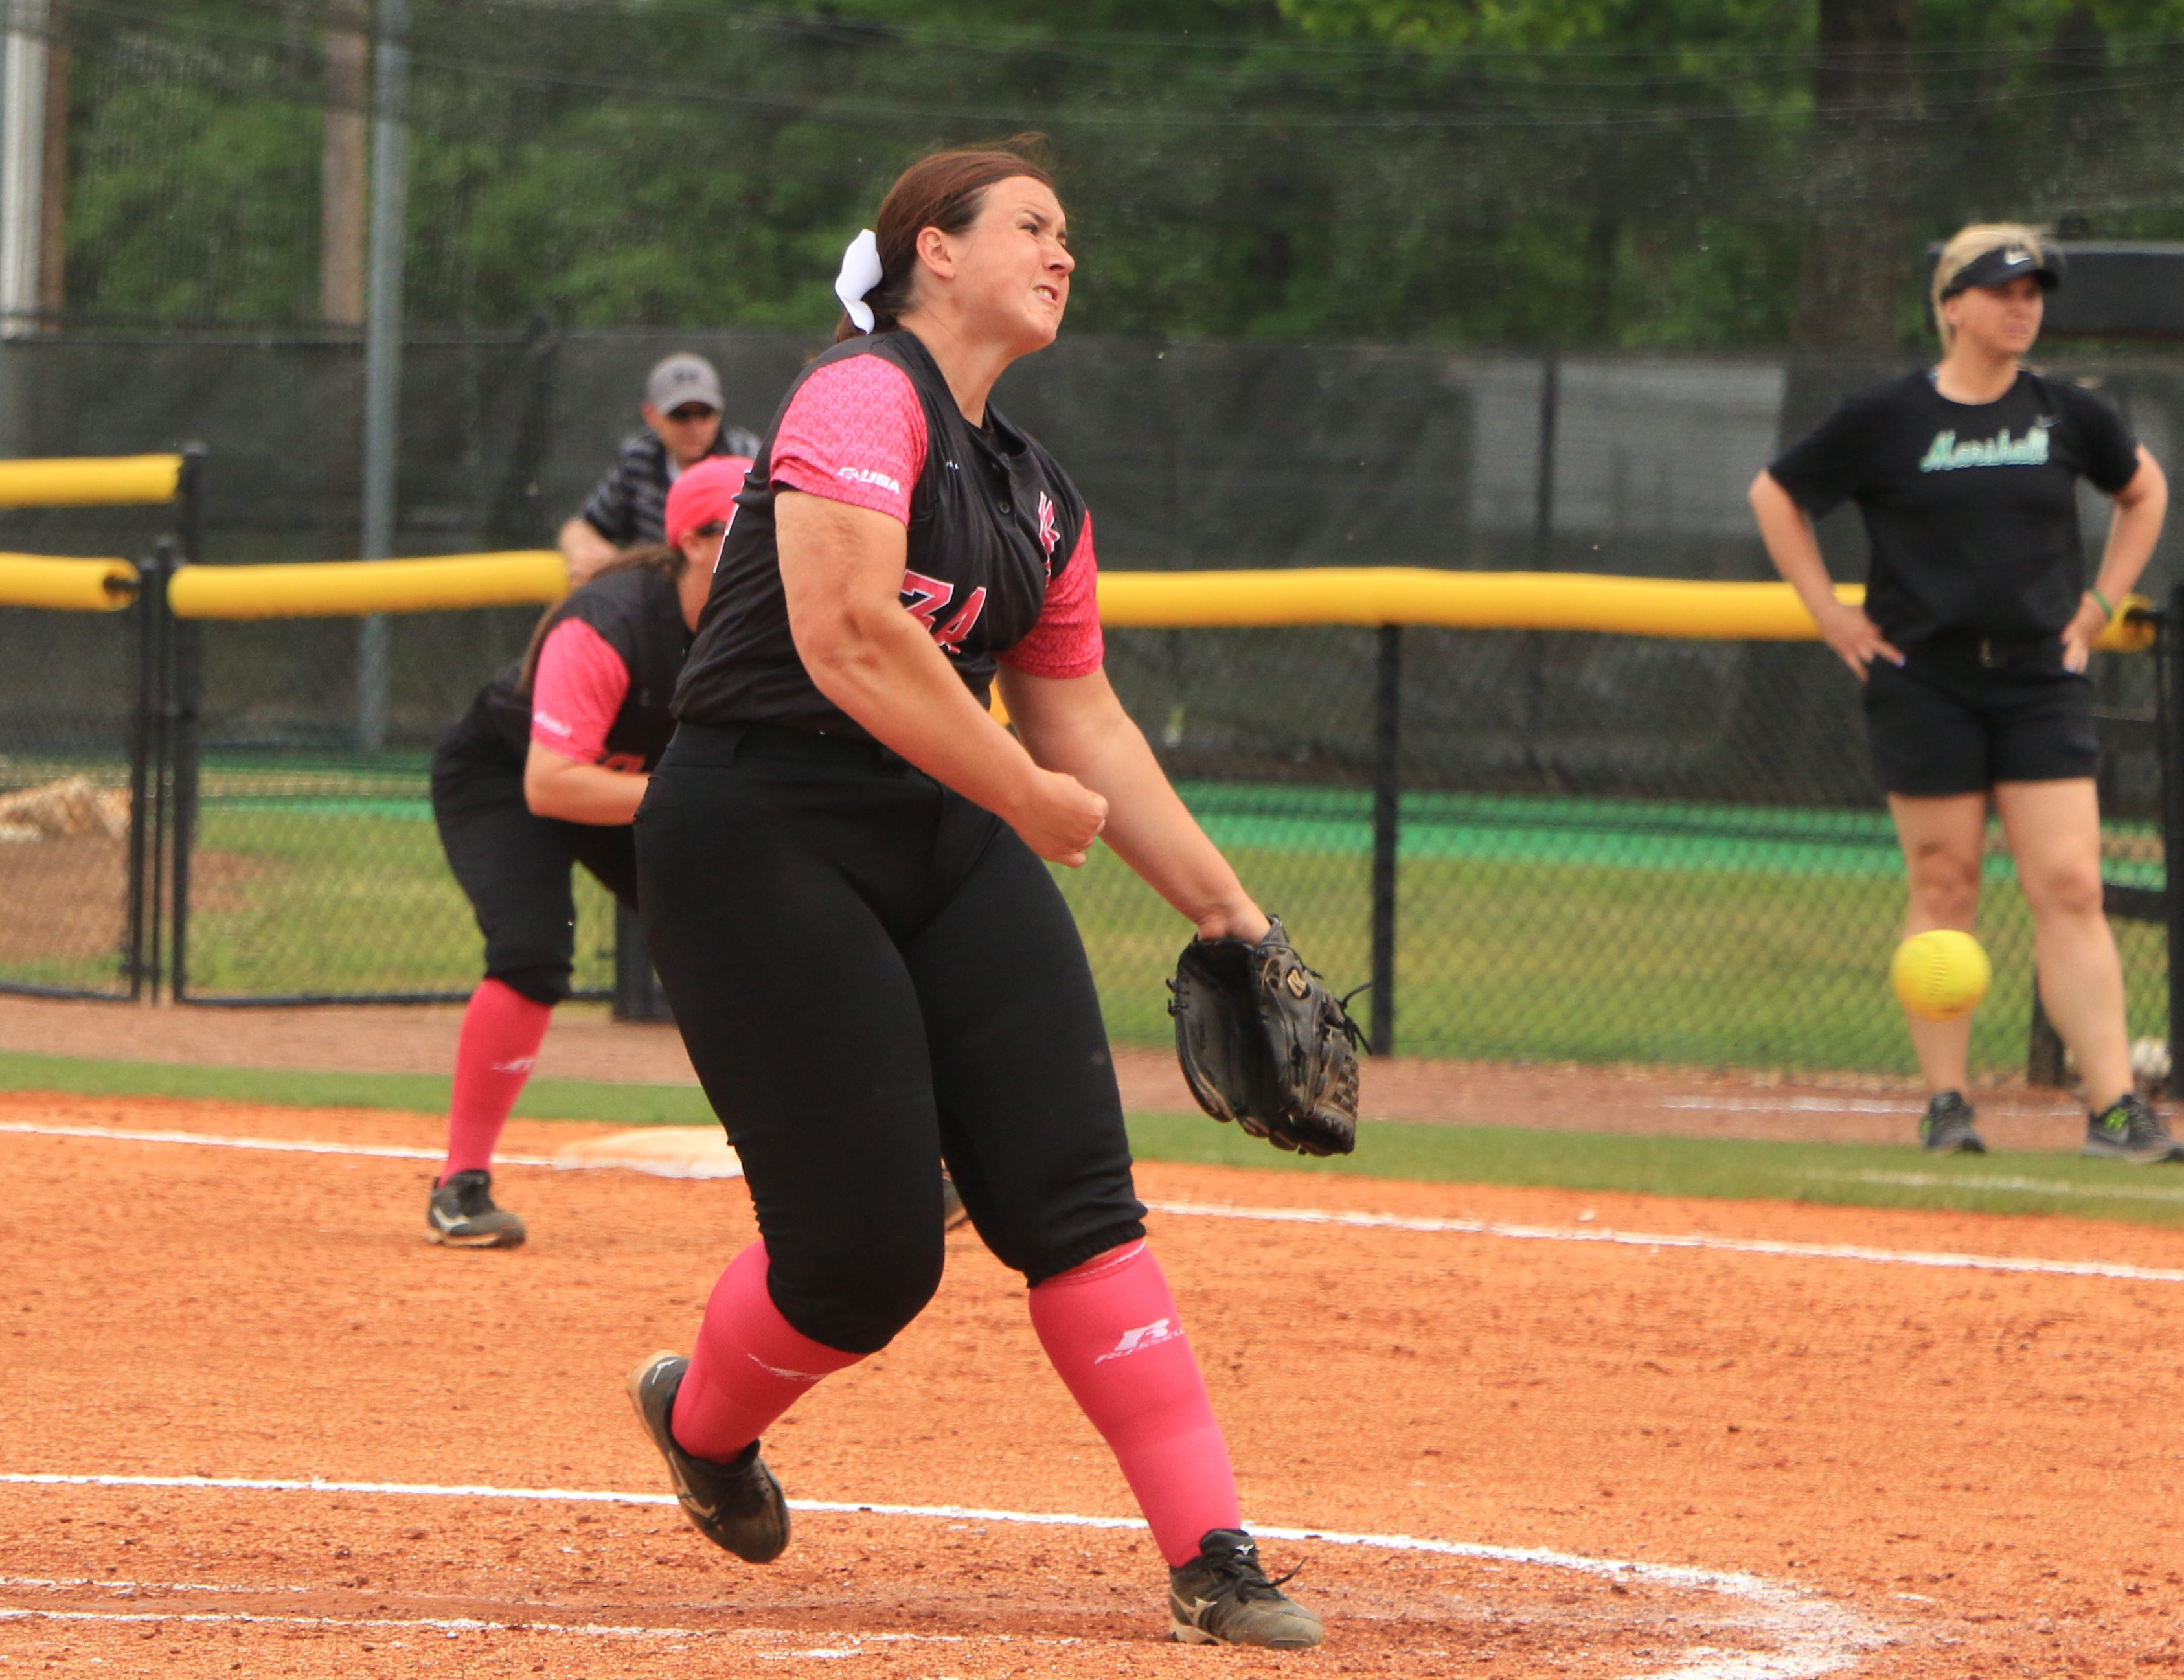 Lady Eagles lose rematch to South Alabama, 4-3